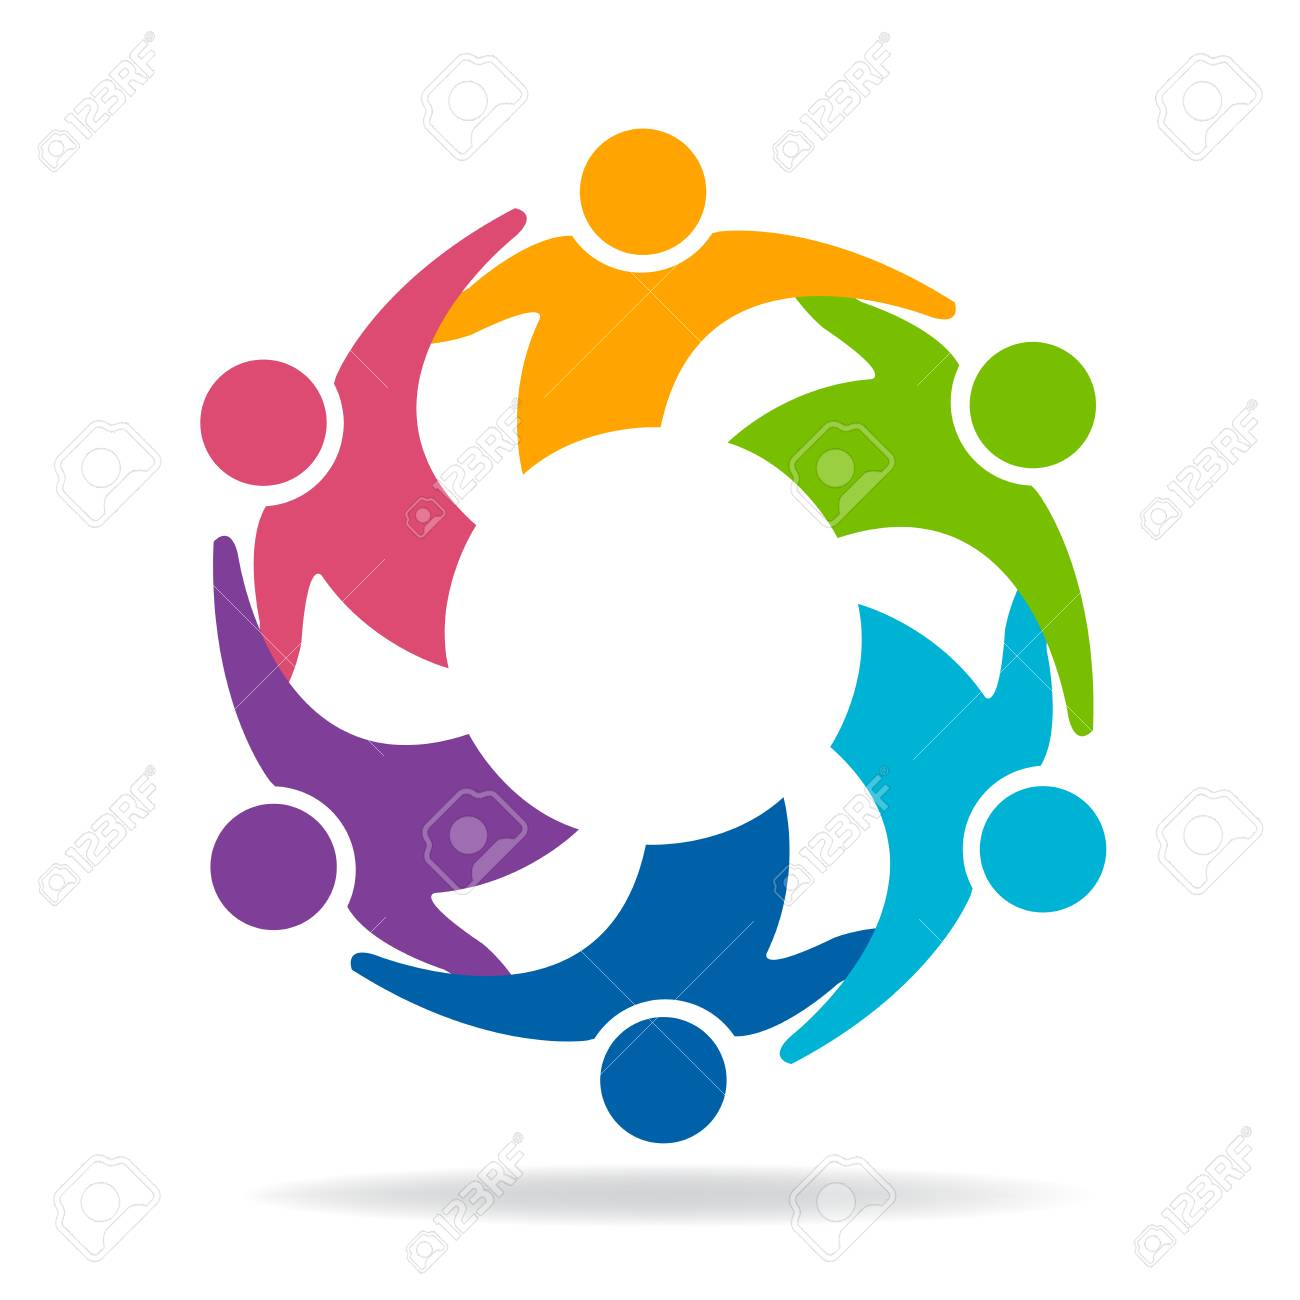 Teamwork friendship unity business colorful people icon logo vector - 89941232